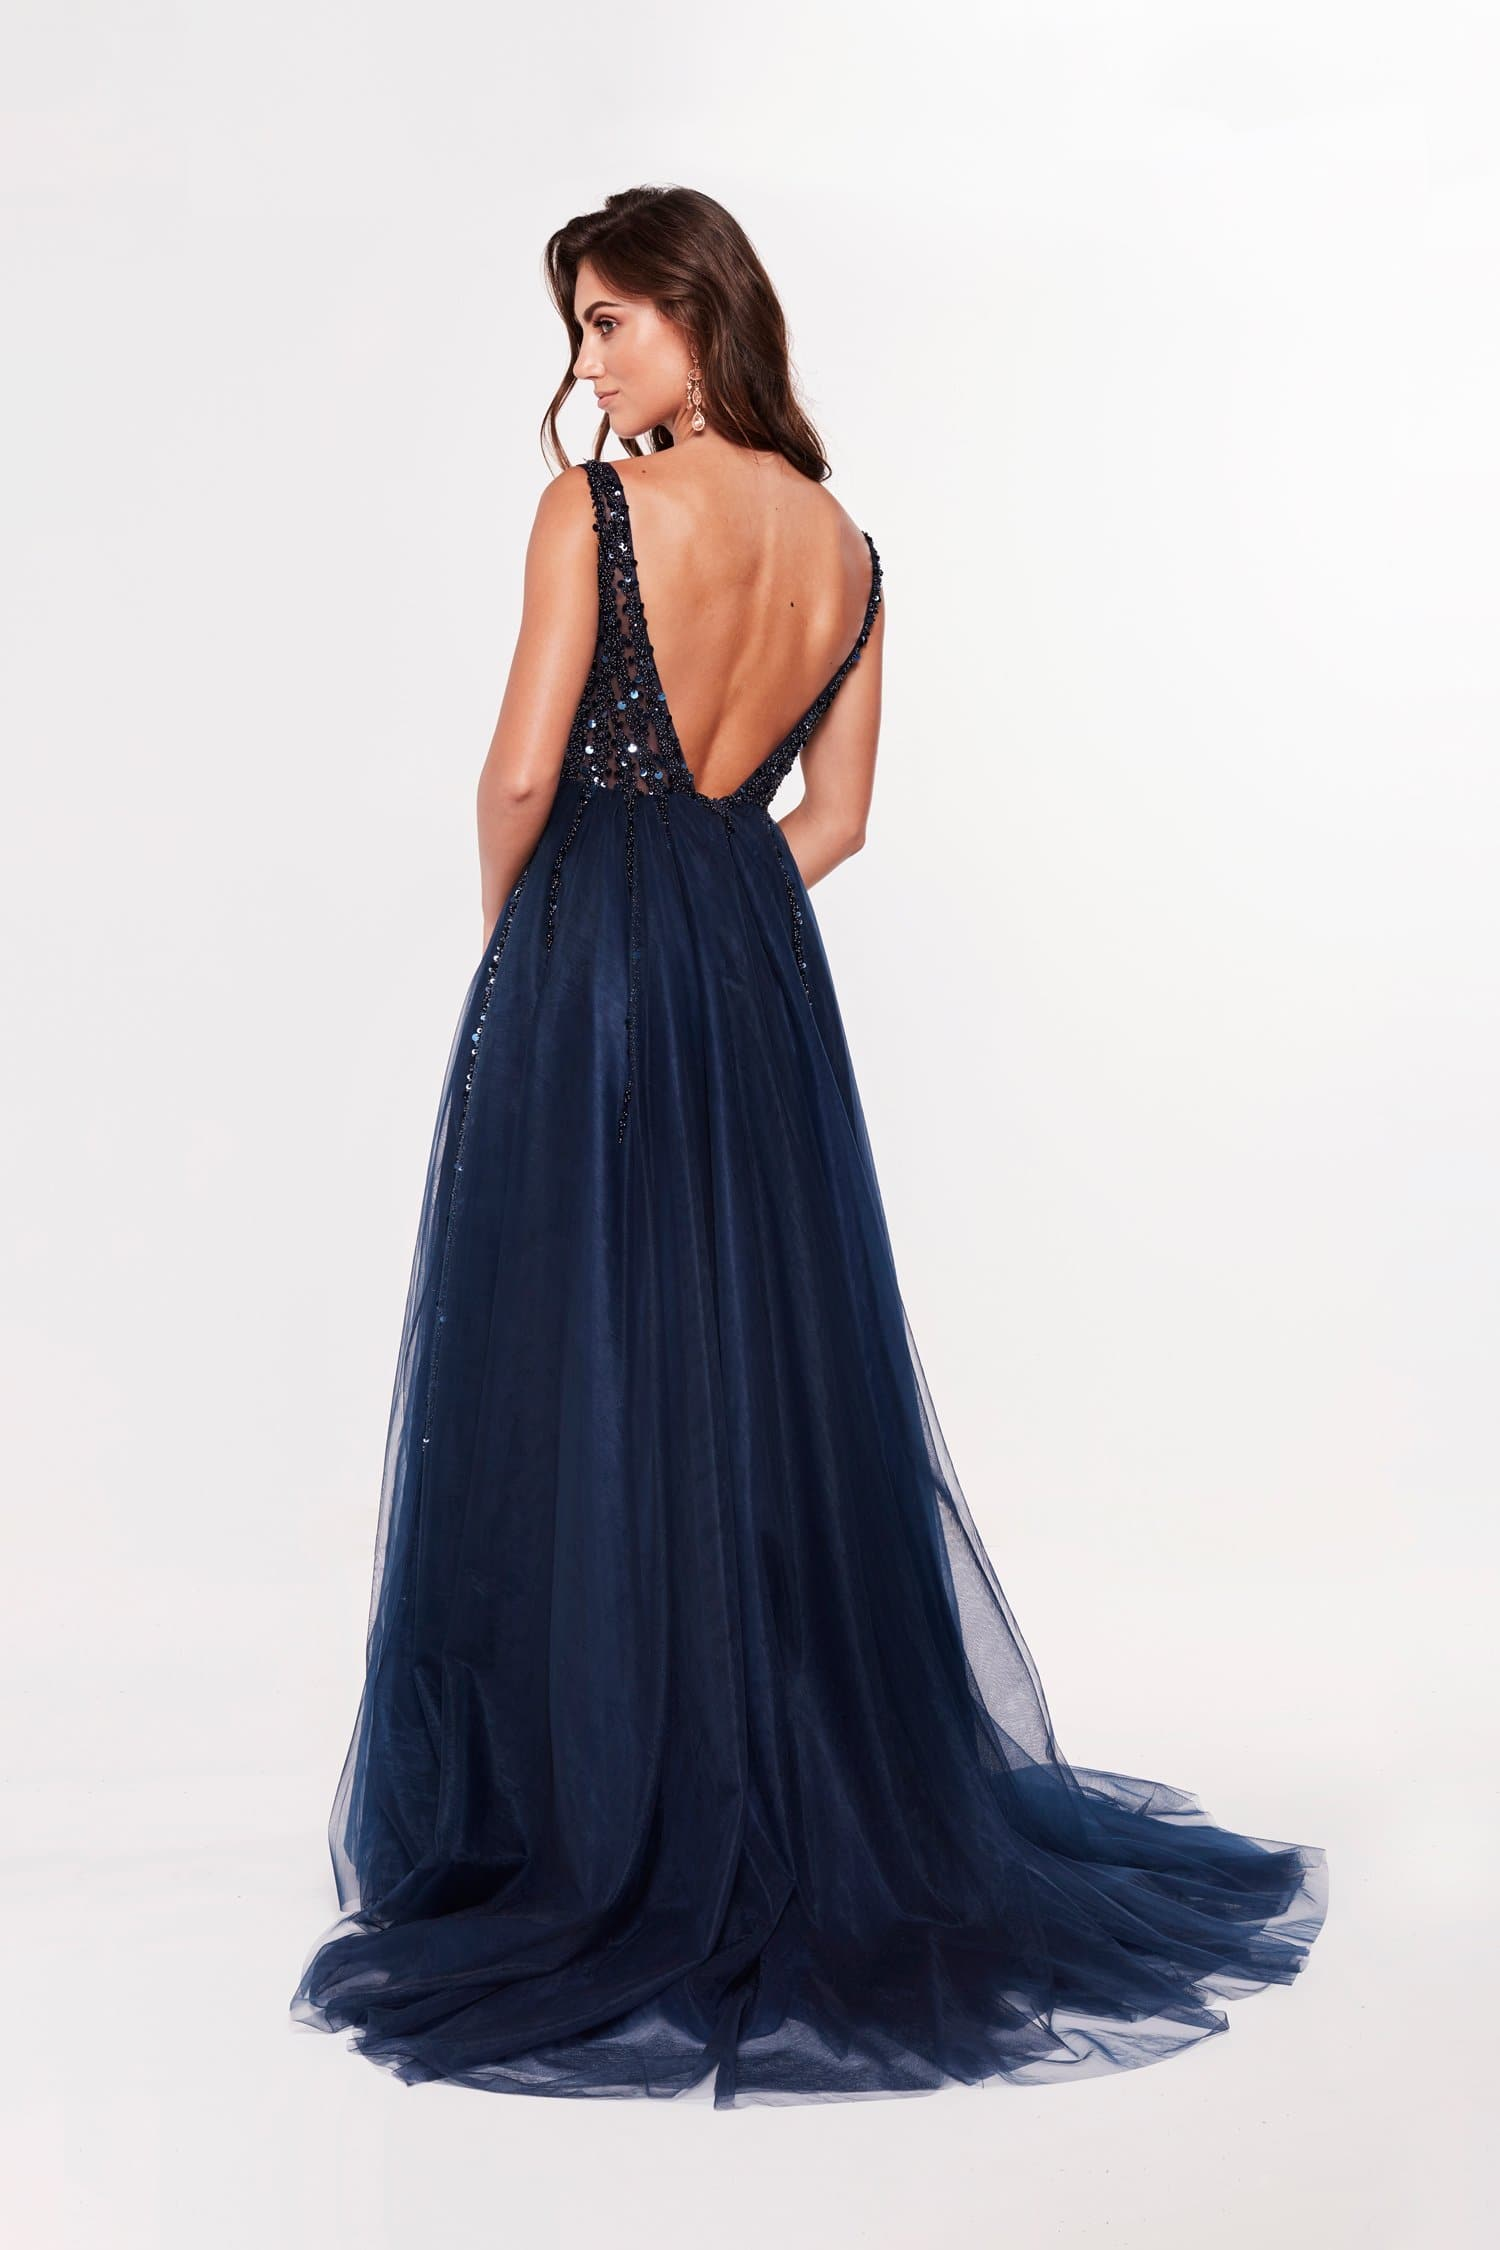 A&N Princessa - Navy Tulle Gown with Beaded Bodice